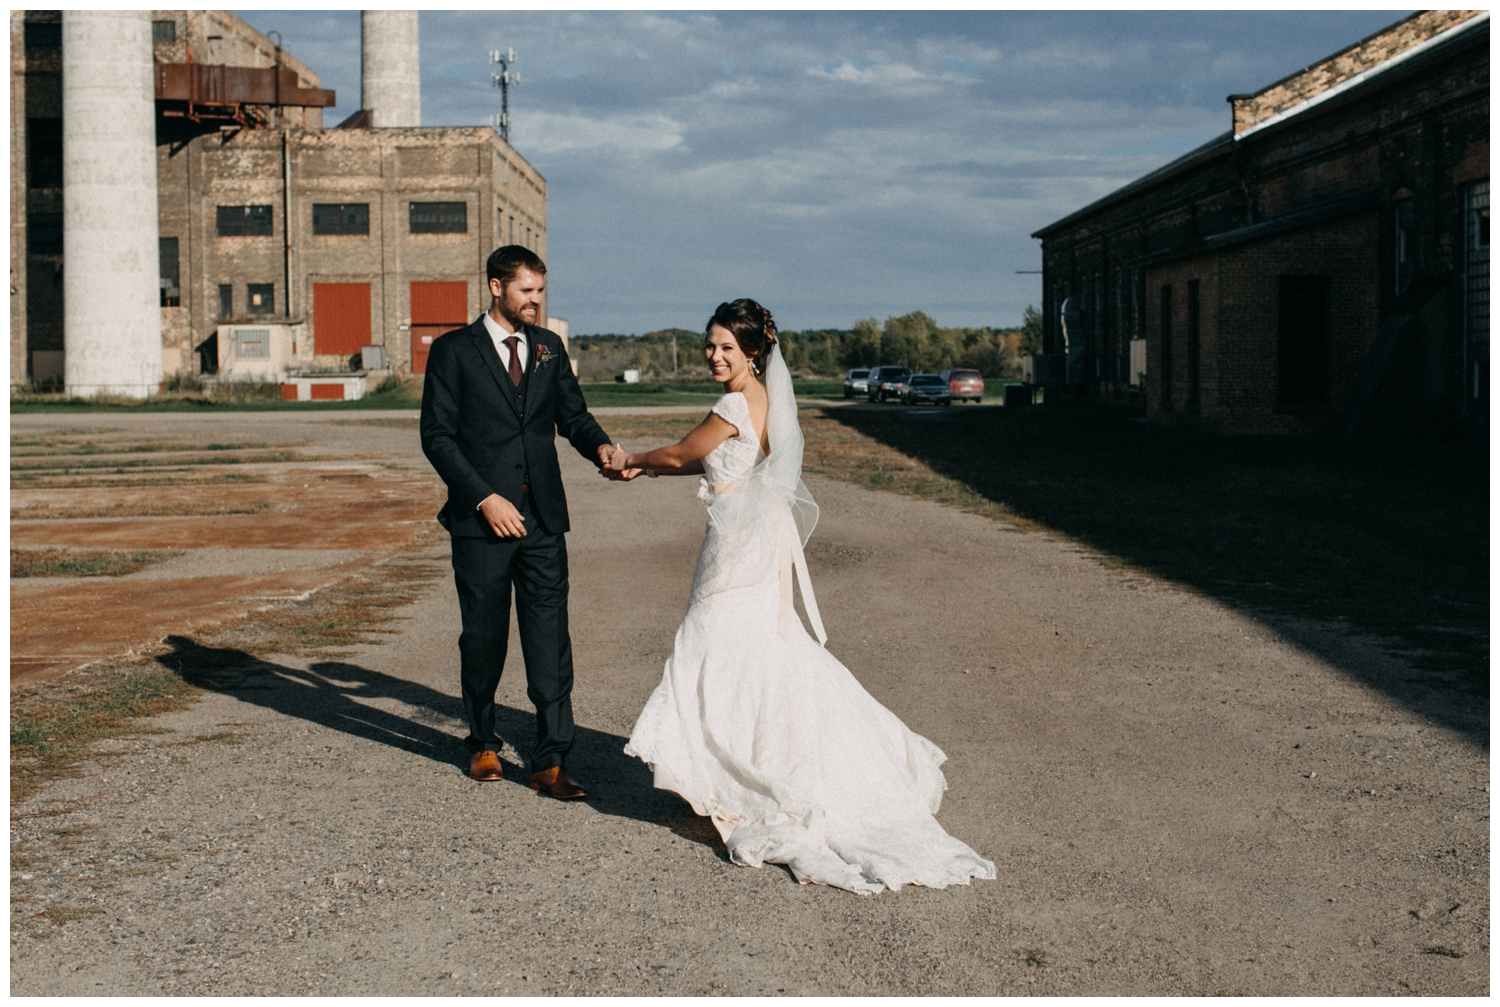 Romantic industrial wedding at the NP Event Space in Brainerd MN photographed by Britt DeZeeuw